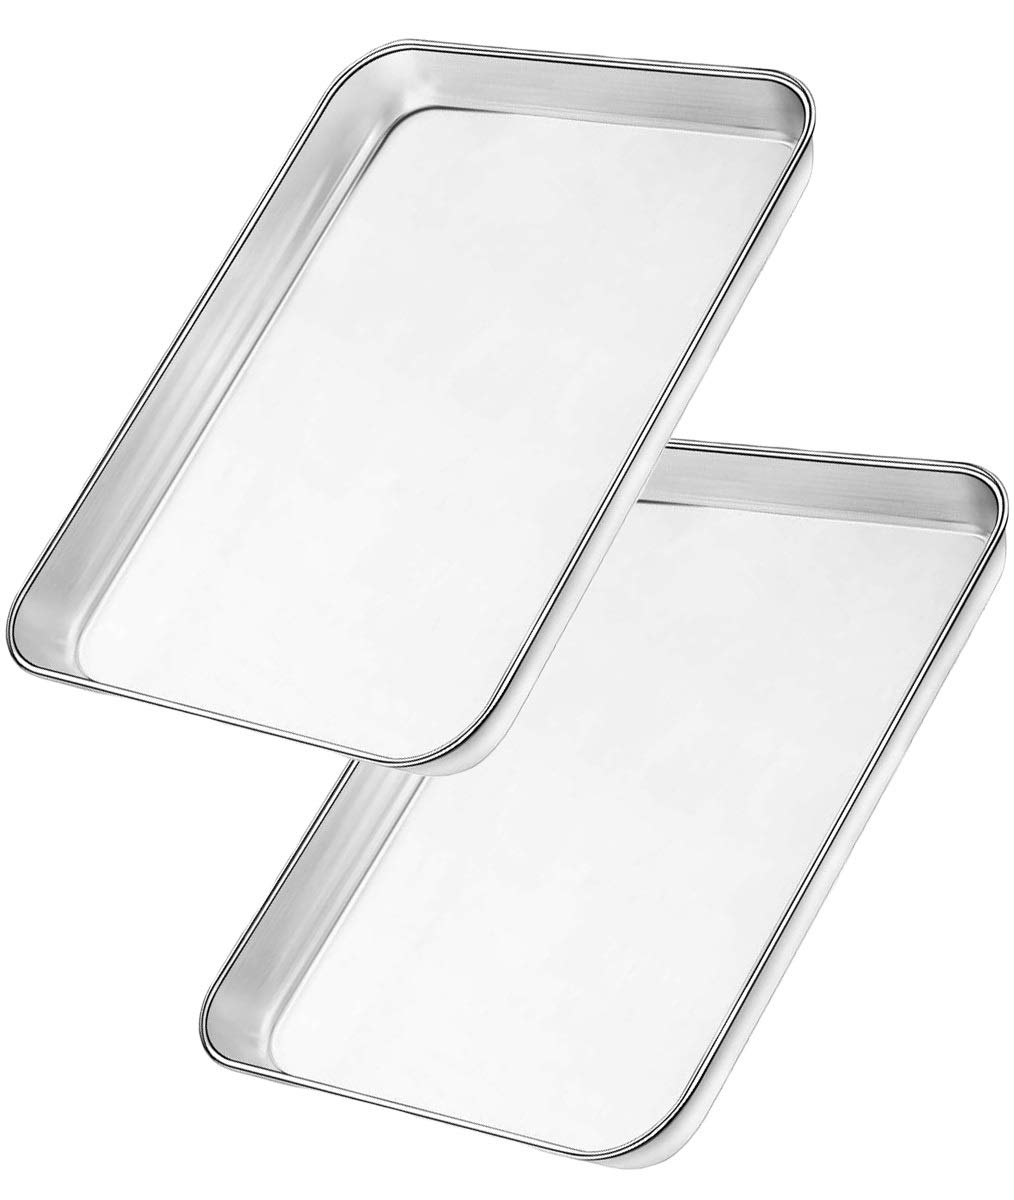 Bangder Baking Sheet Pan for Toaster Oven, Heavy Duty Stainless Steel Sheet Pan Easily Wipes Clean! Mirror Finish, Dishwasher Safe, 10 X 8 inch, Set of 2